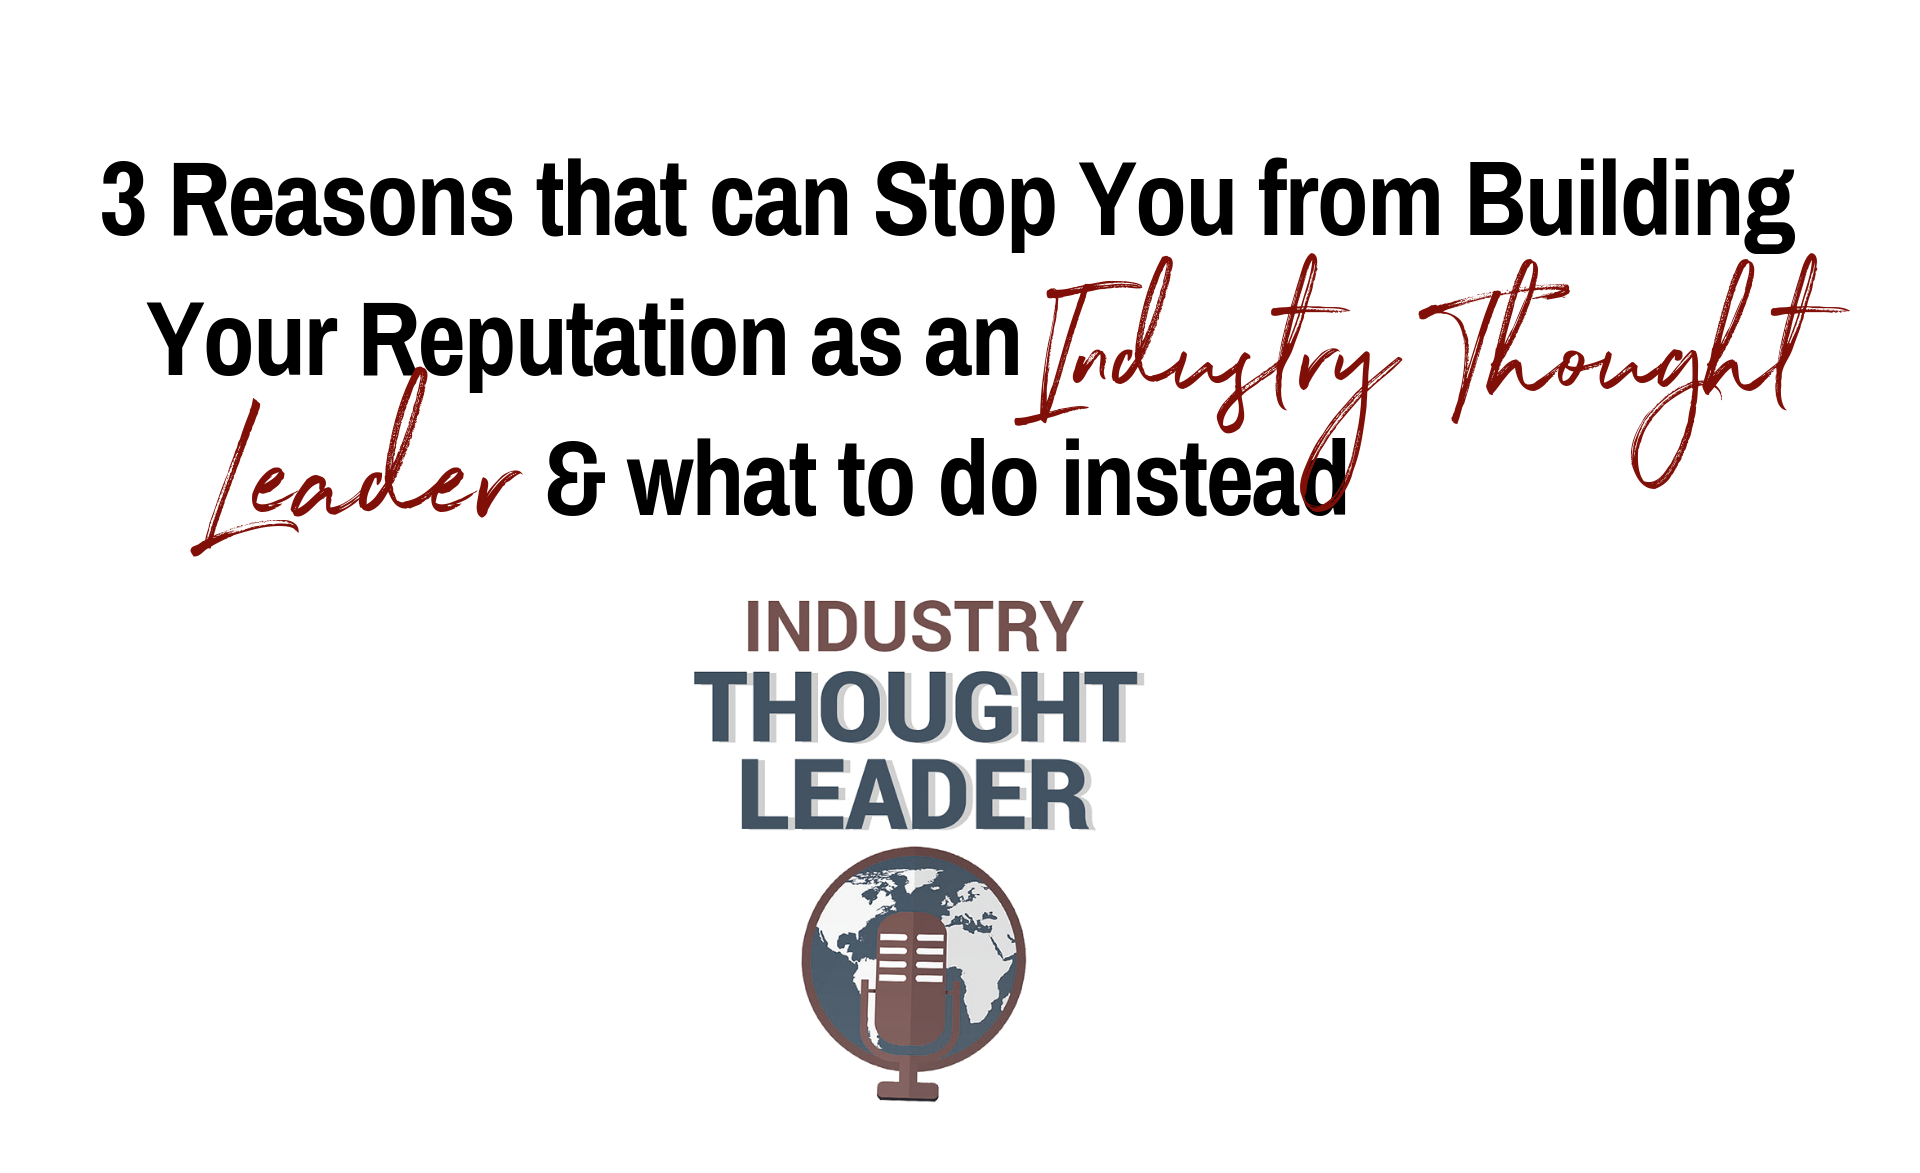 3 Reasons That Can Stop You From Building Your Reputation as an Industry Thought Leader and What to do Instead